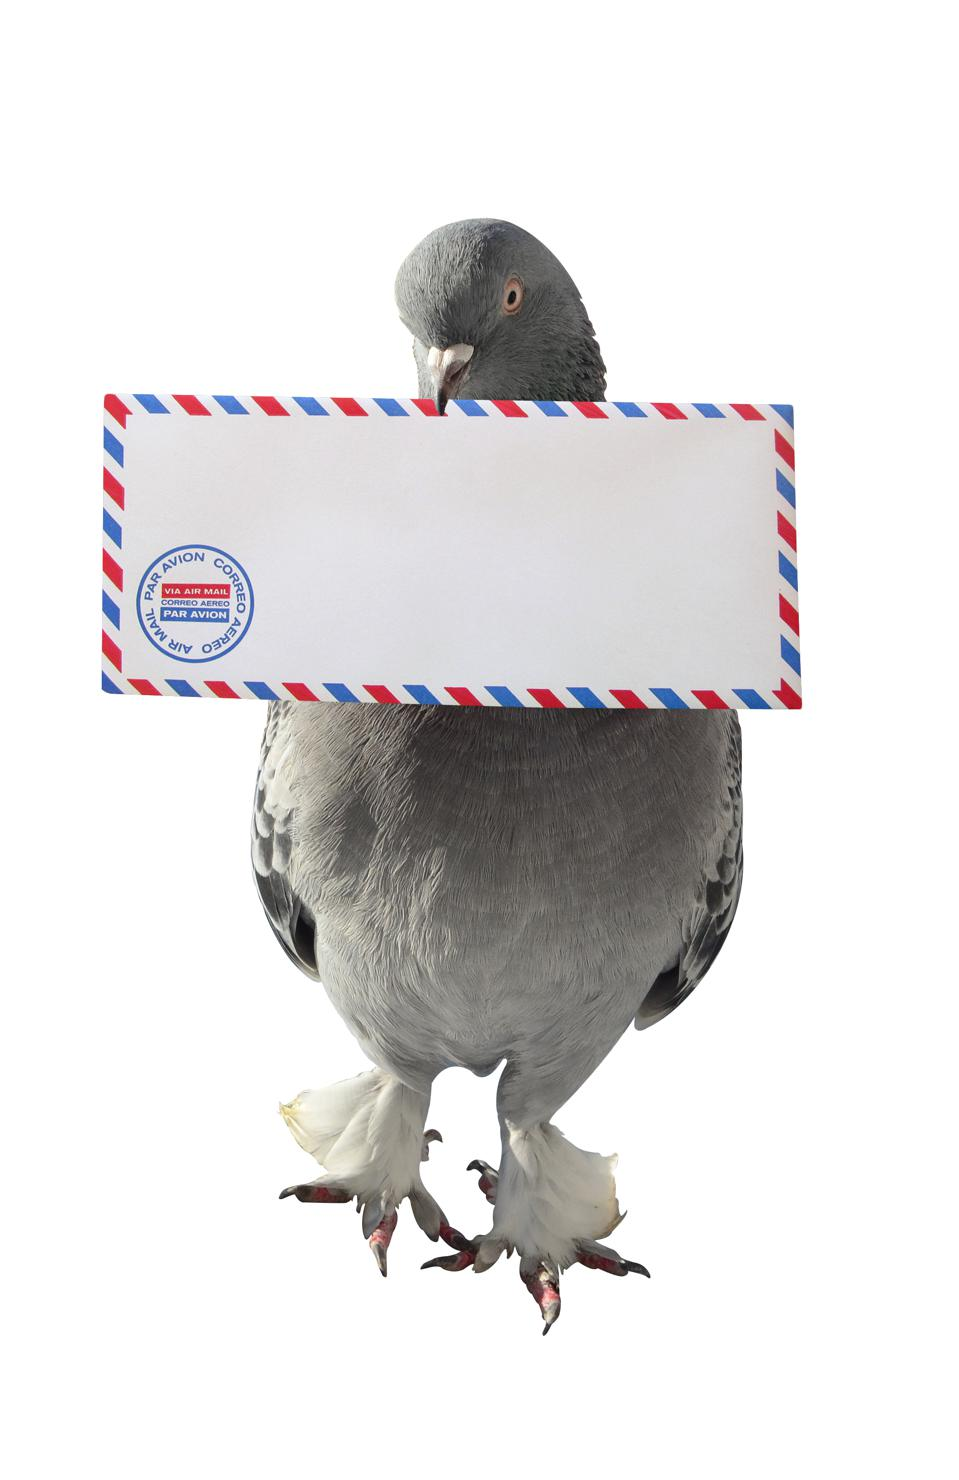 Sometimes it would be quicker to use a carrier pigeon to send data between firms than to use the systems we sometimes rely on